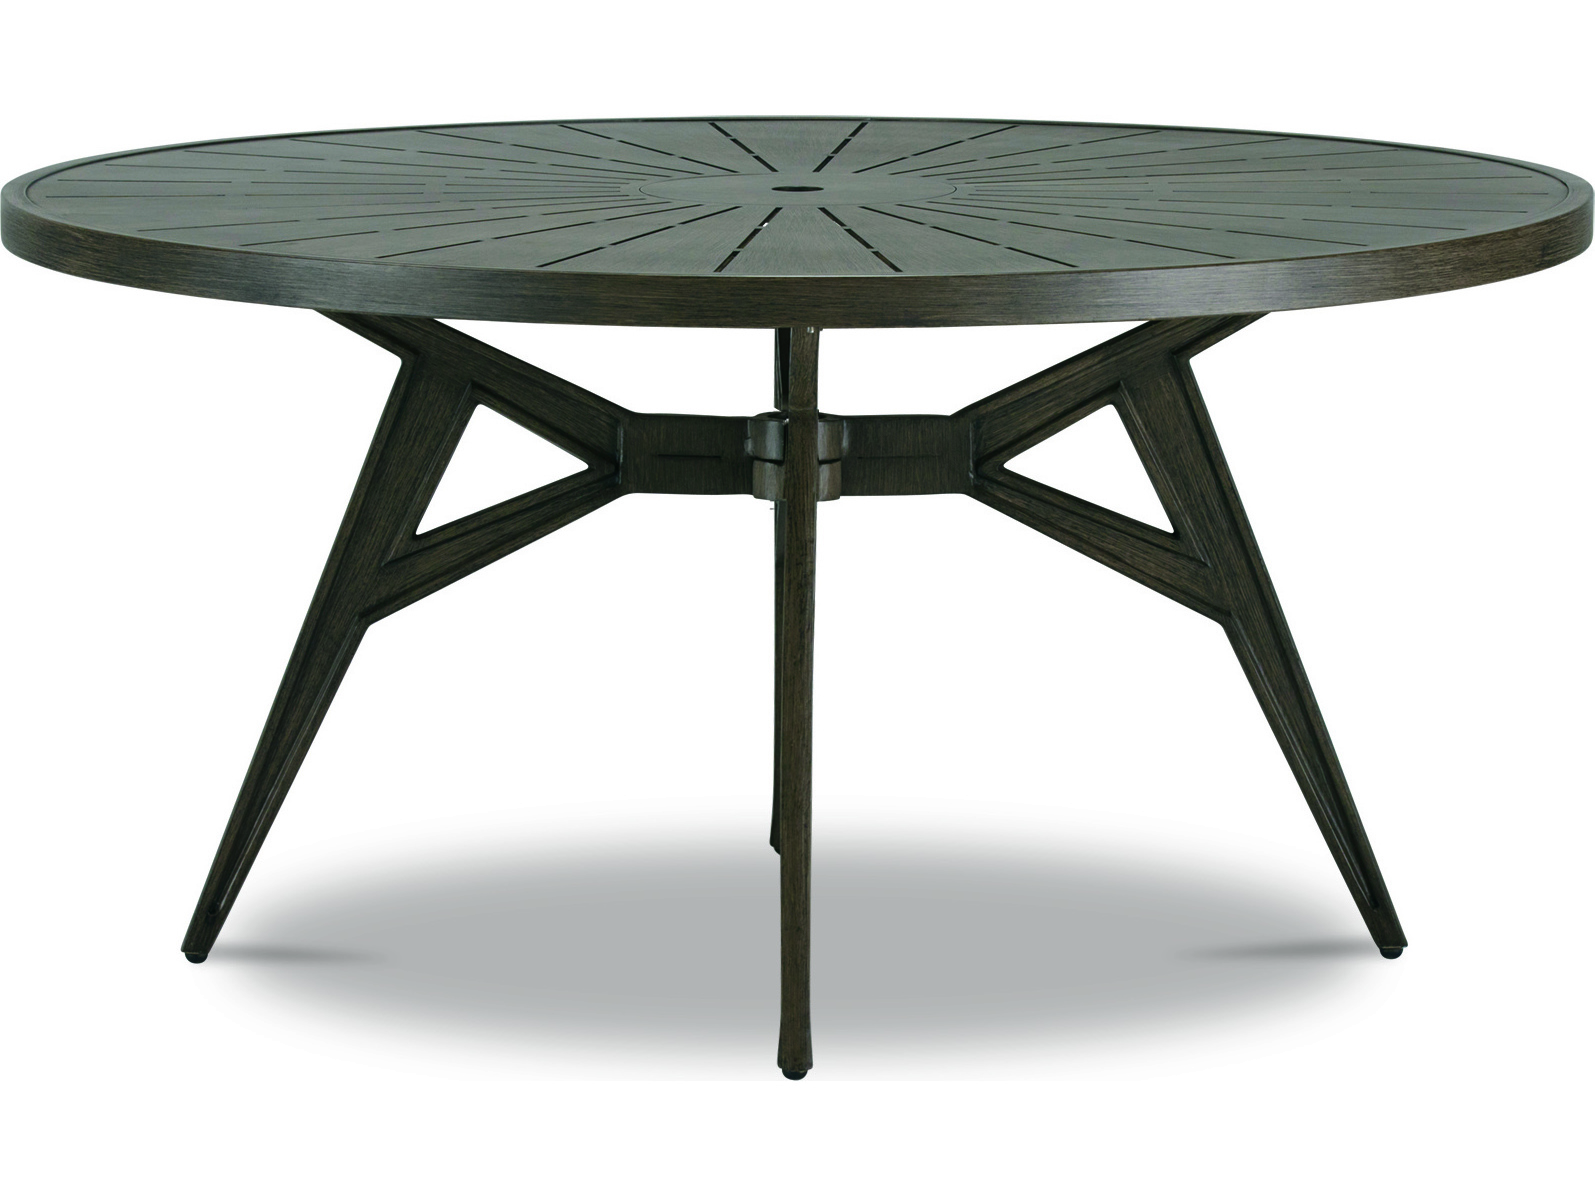 Cast Classics Solaire Cast Aluminum 60 Wide Round Dining Height Table With Umbrella Hole Cc7540060d